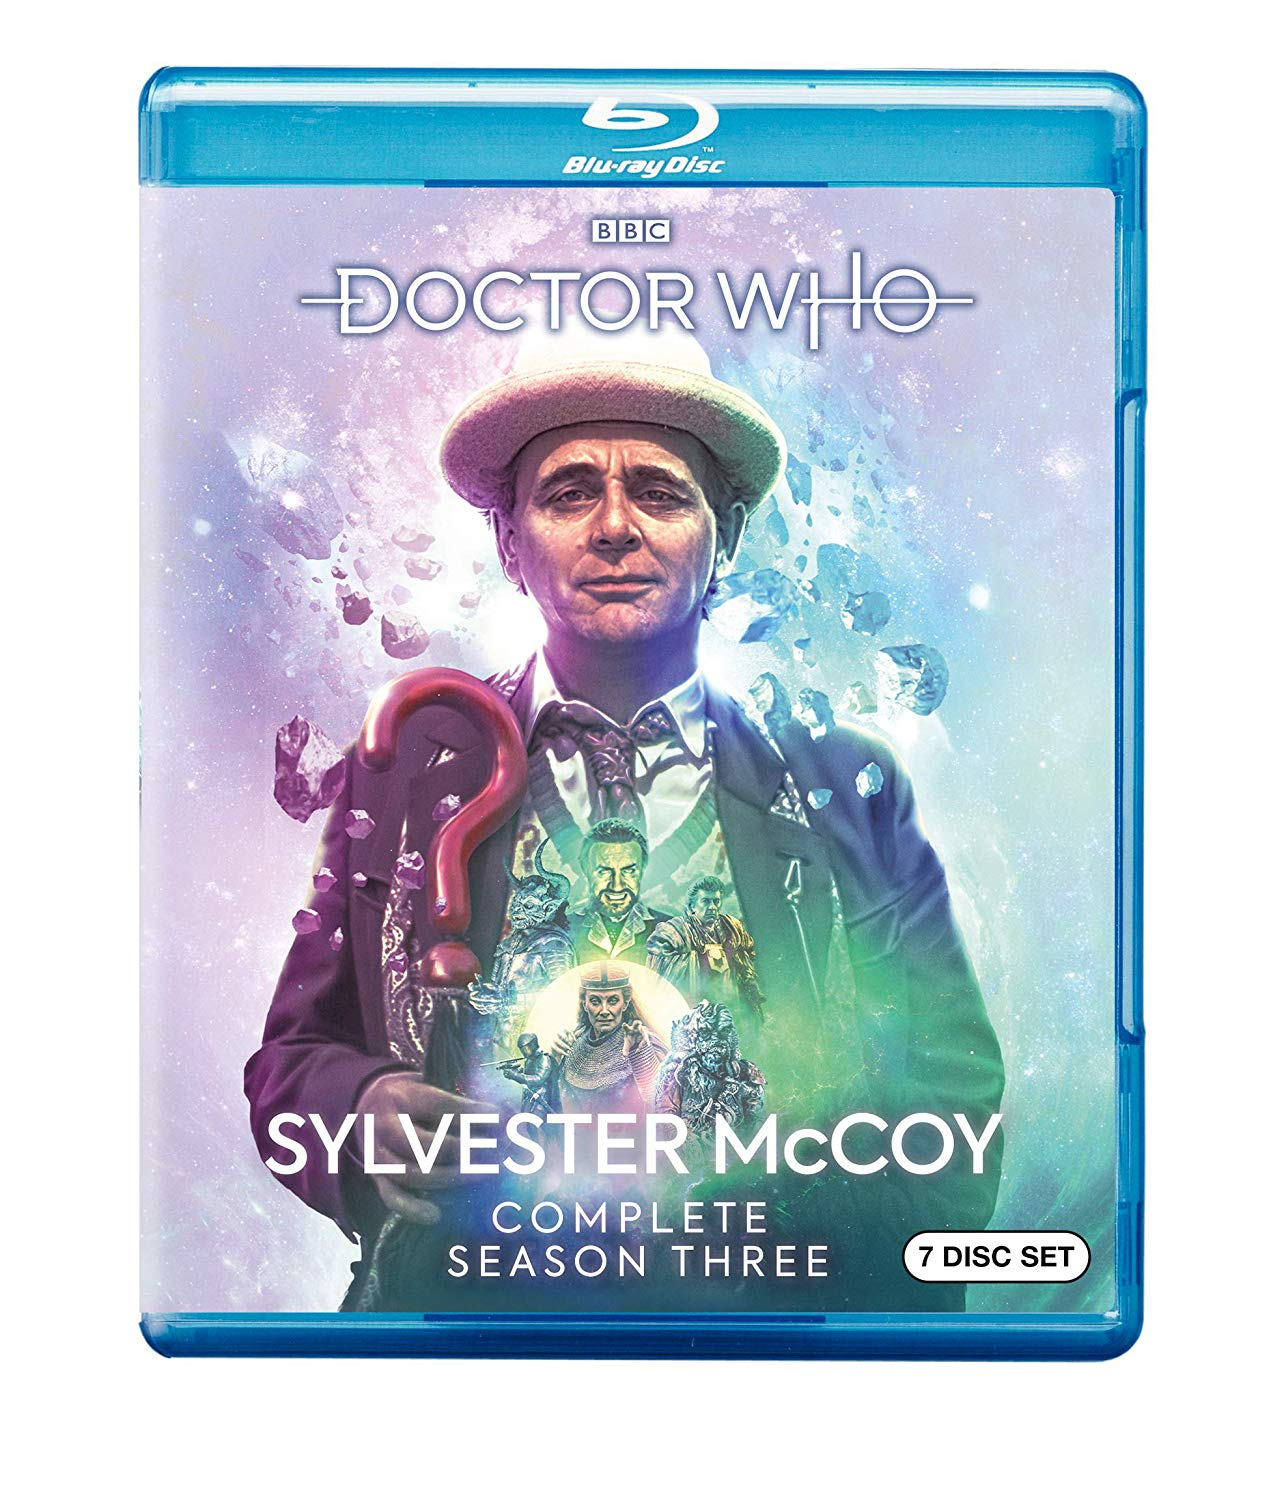 Blu-ray: Doctor Who Sylvester McCoy, Season 3